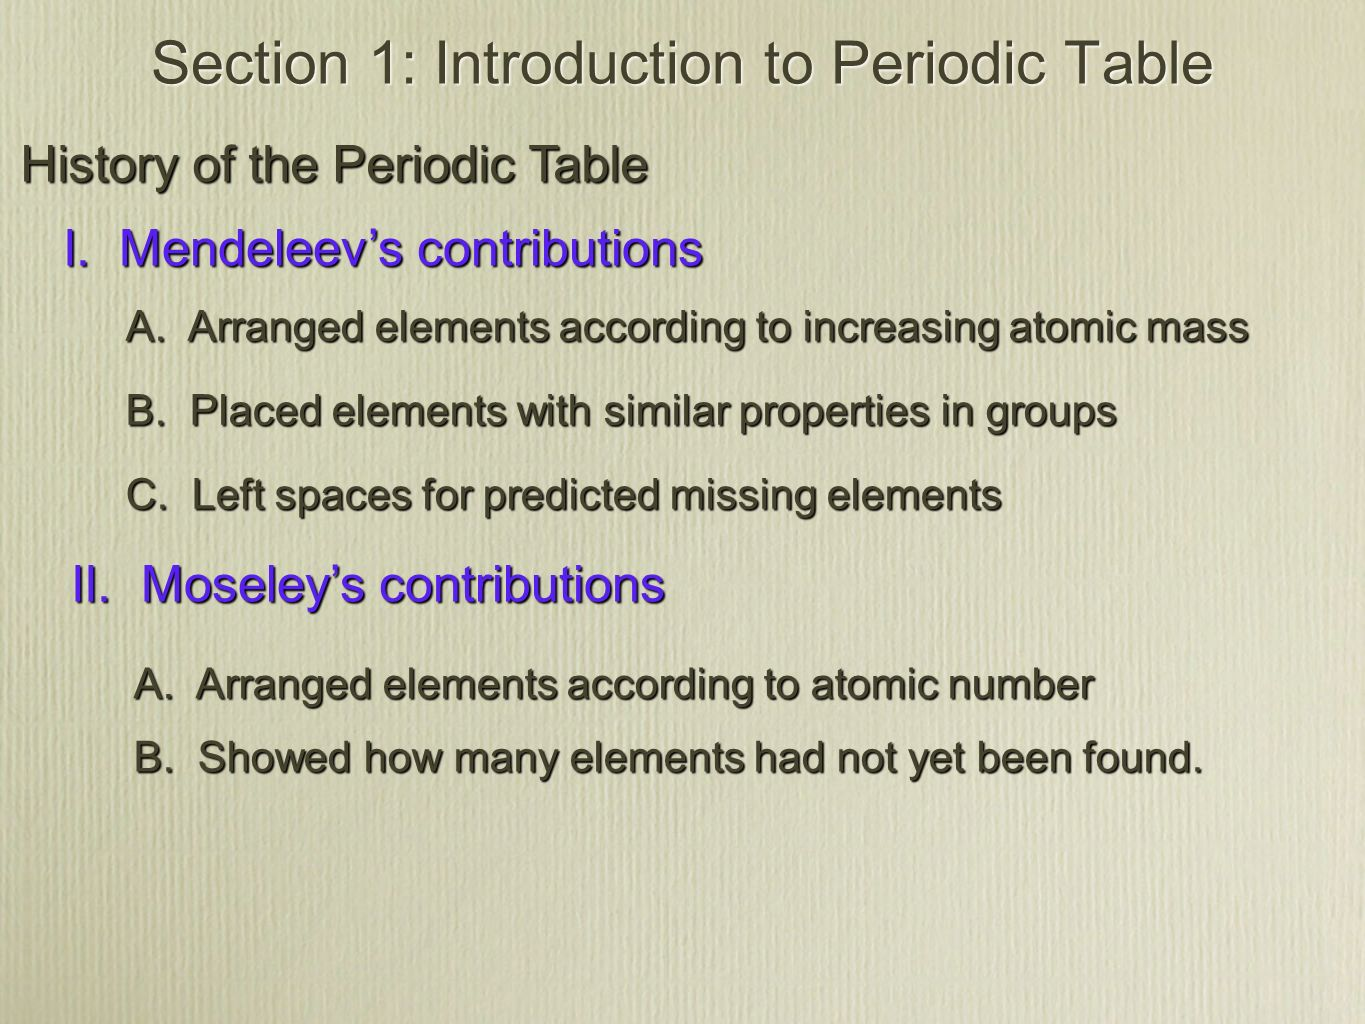 Section 1 introduction to the periodic table ppt video online section 1 introduction to periodic table gamestrikefo Choice Image